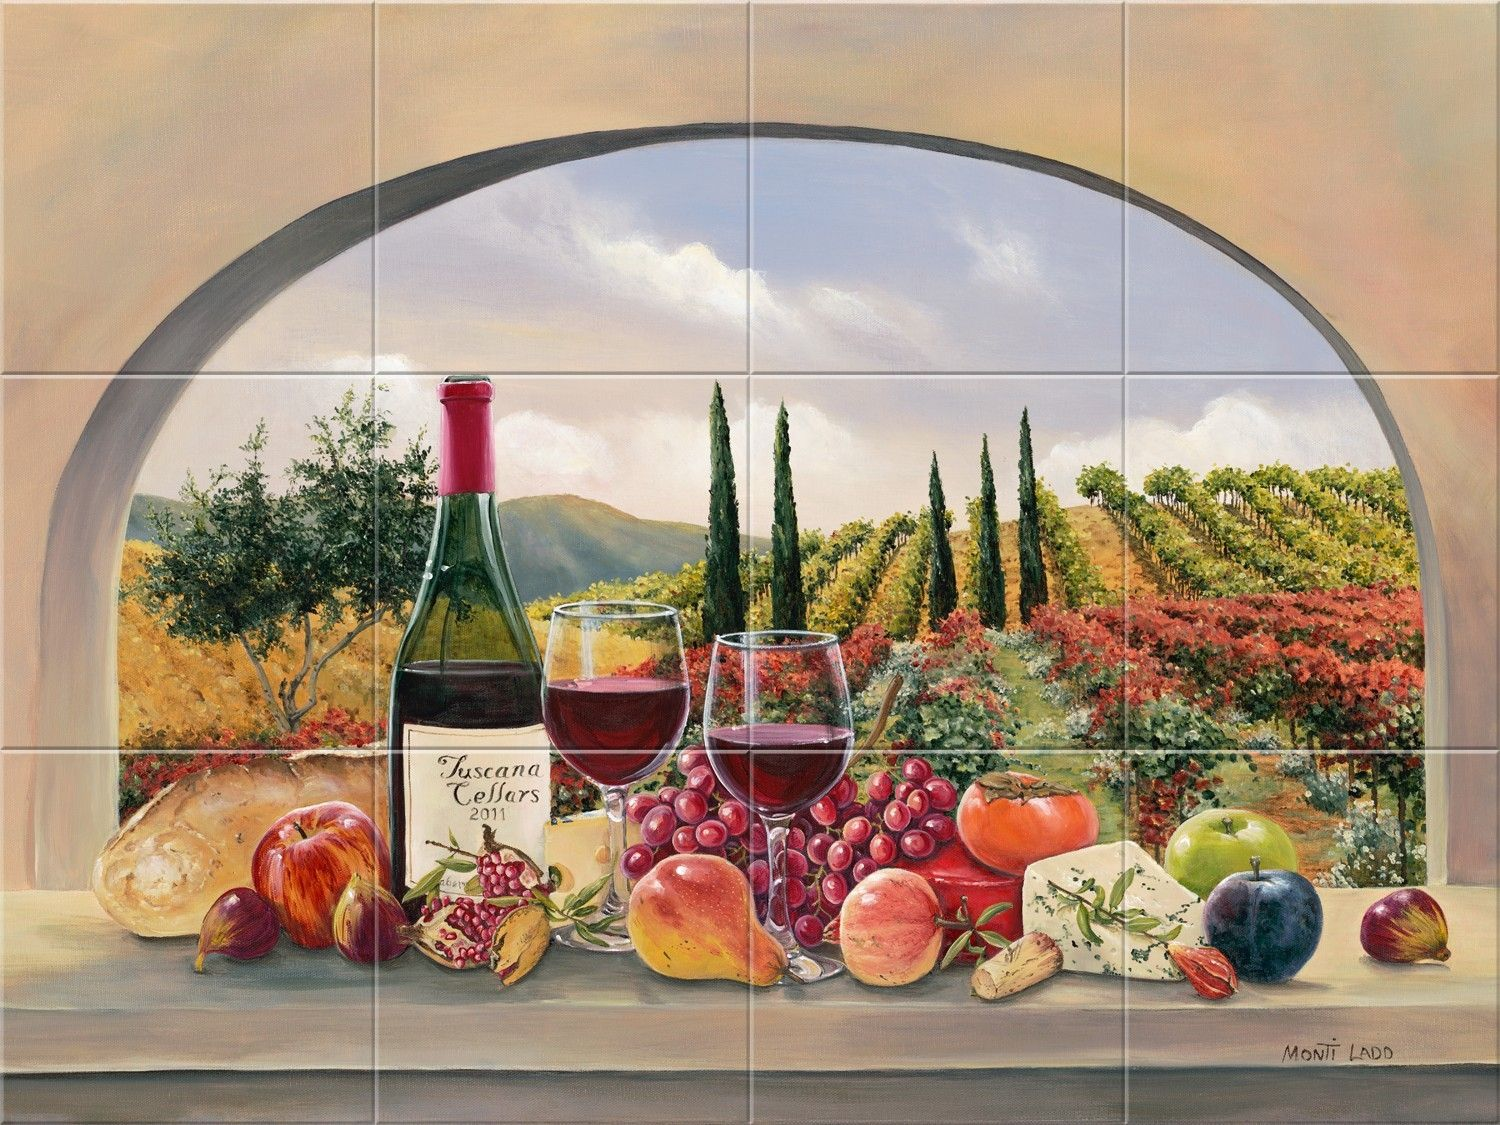 Hand Made Late Harvest Tile Mural By Murals Monti